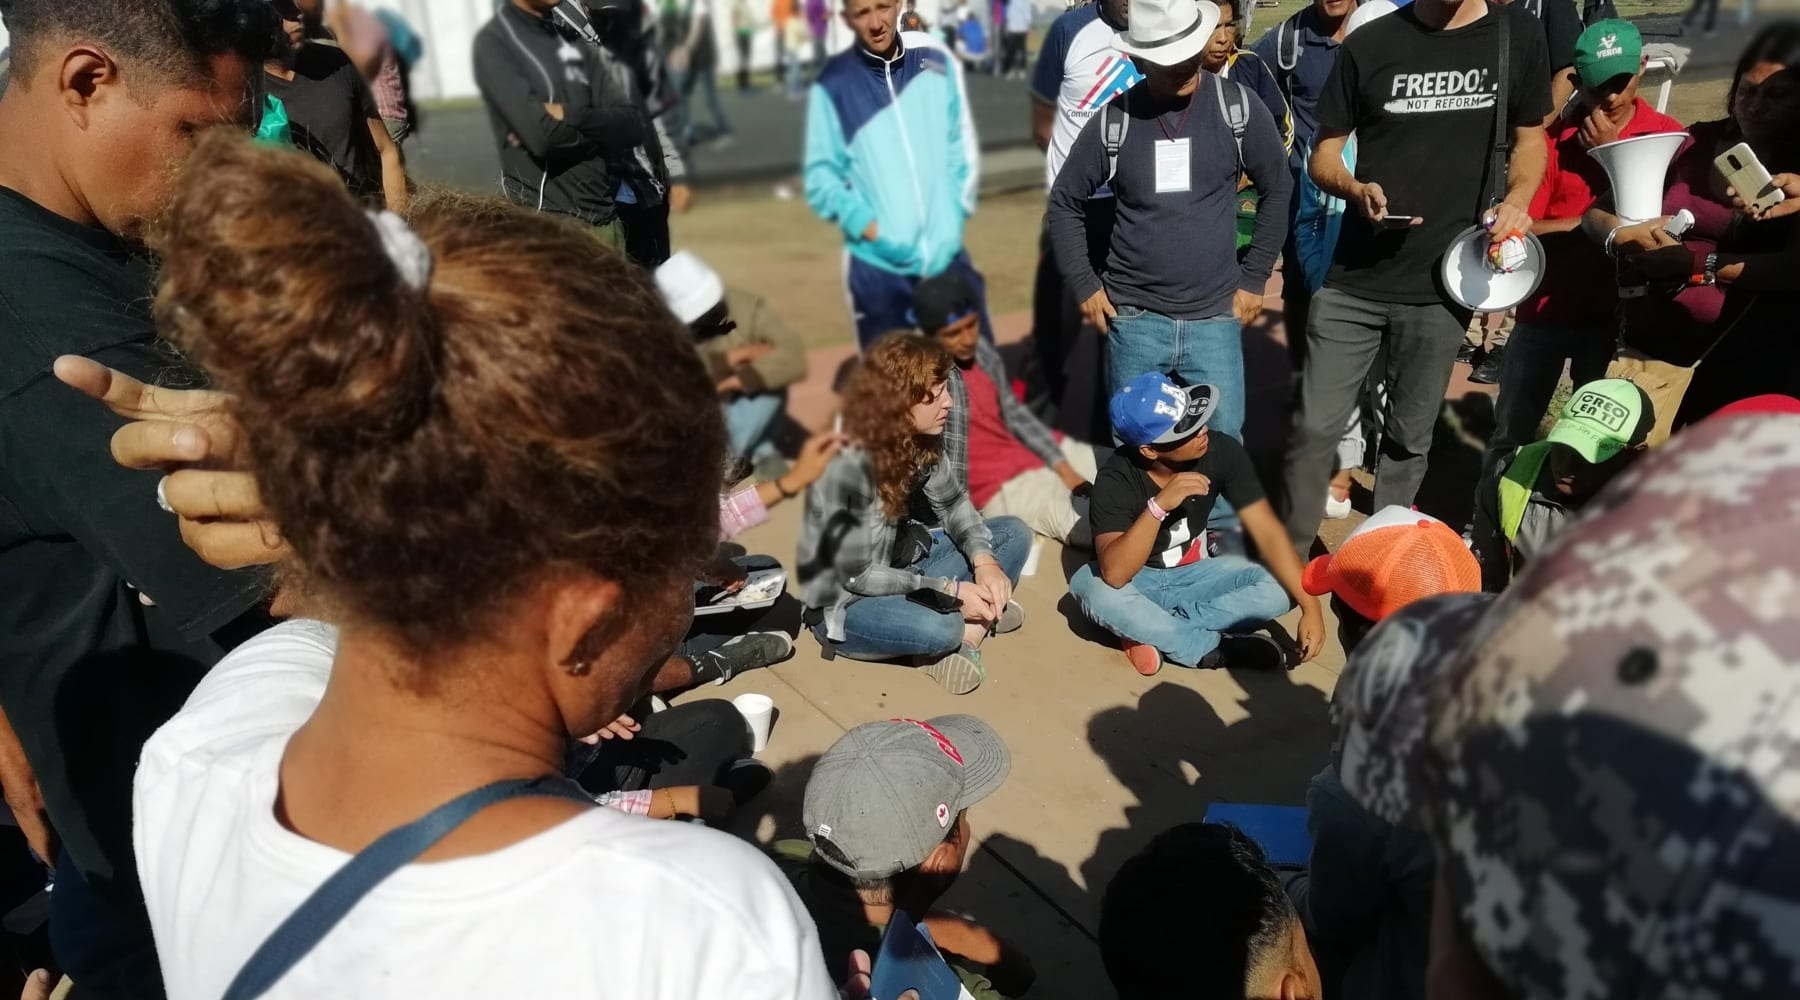 Immigrants sitting on the ground